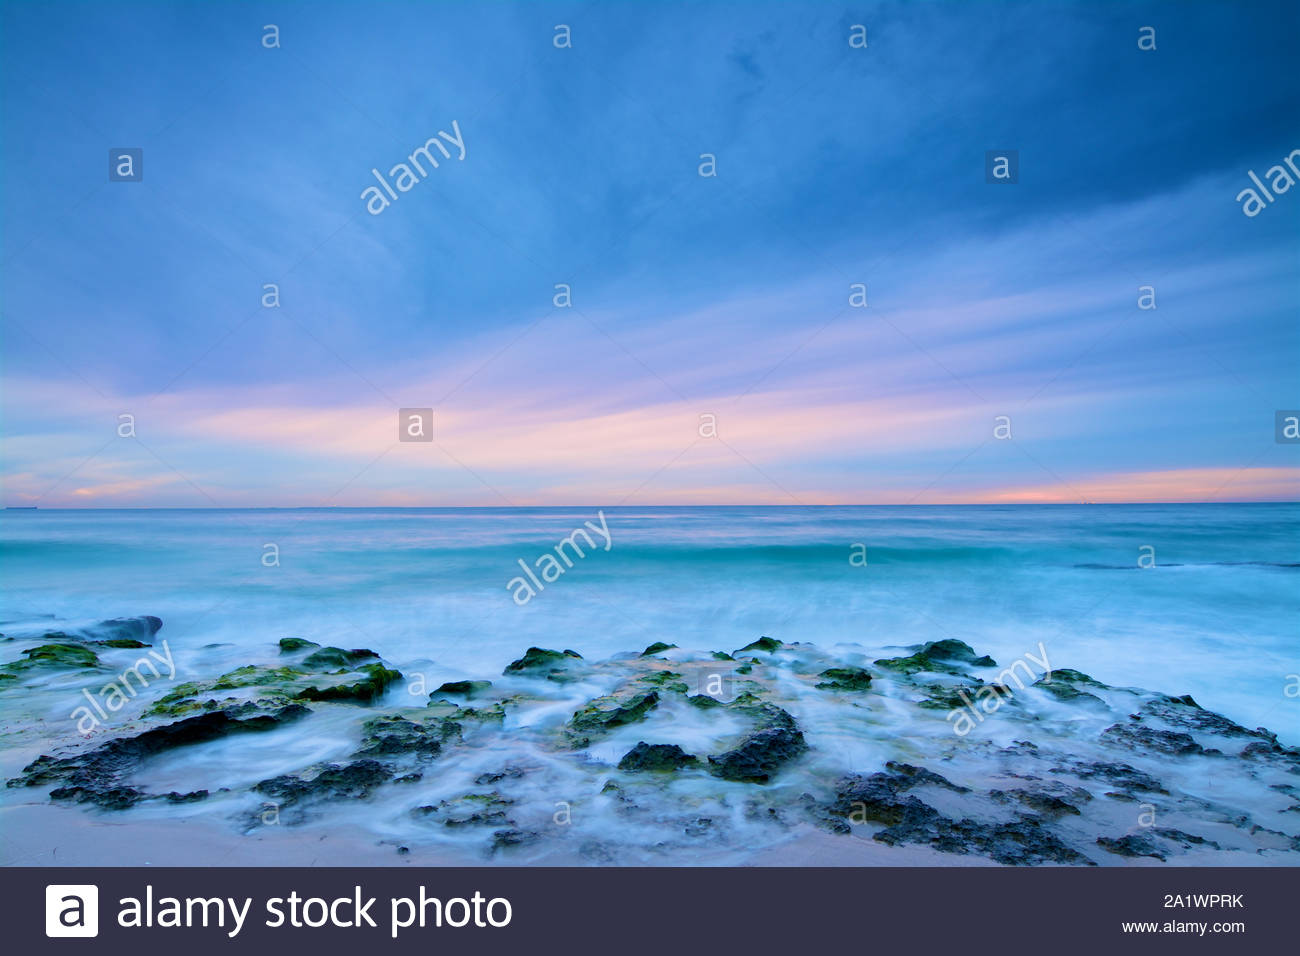 soft-colours-at-dusk-at-north-cottesloe-beach-perth-western-australia-2A1WPRK.jpg